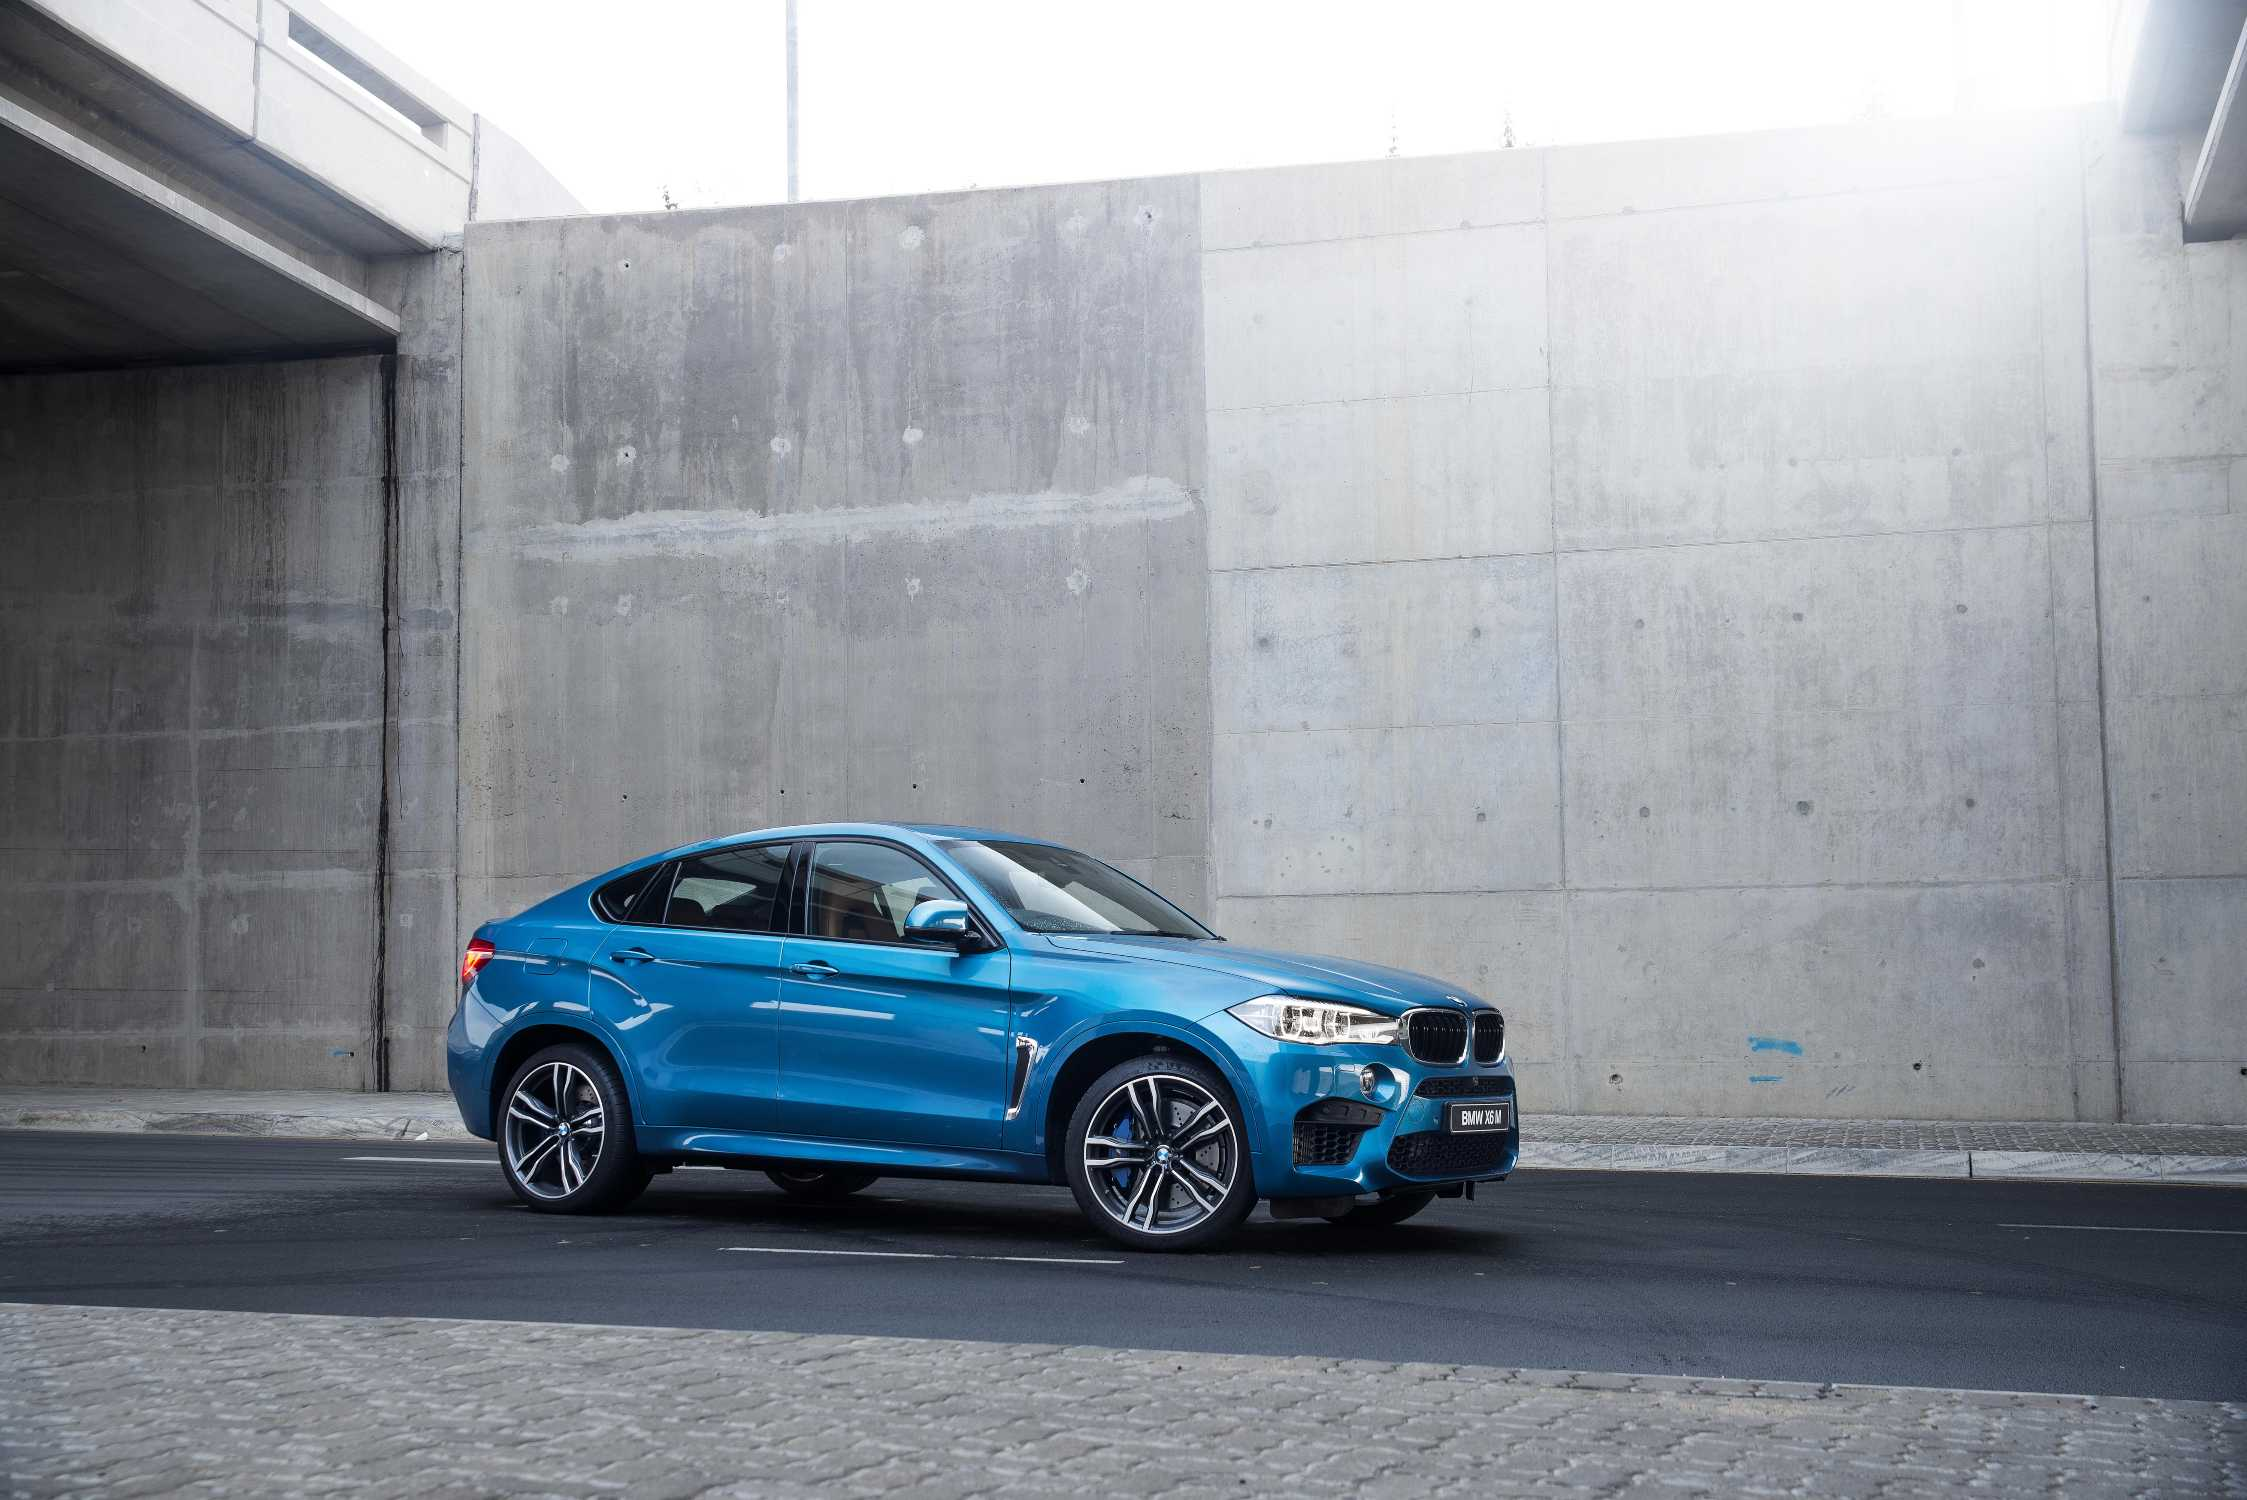 The New Bmw X6 M Now Available In South Africa